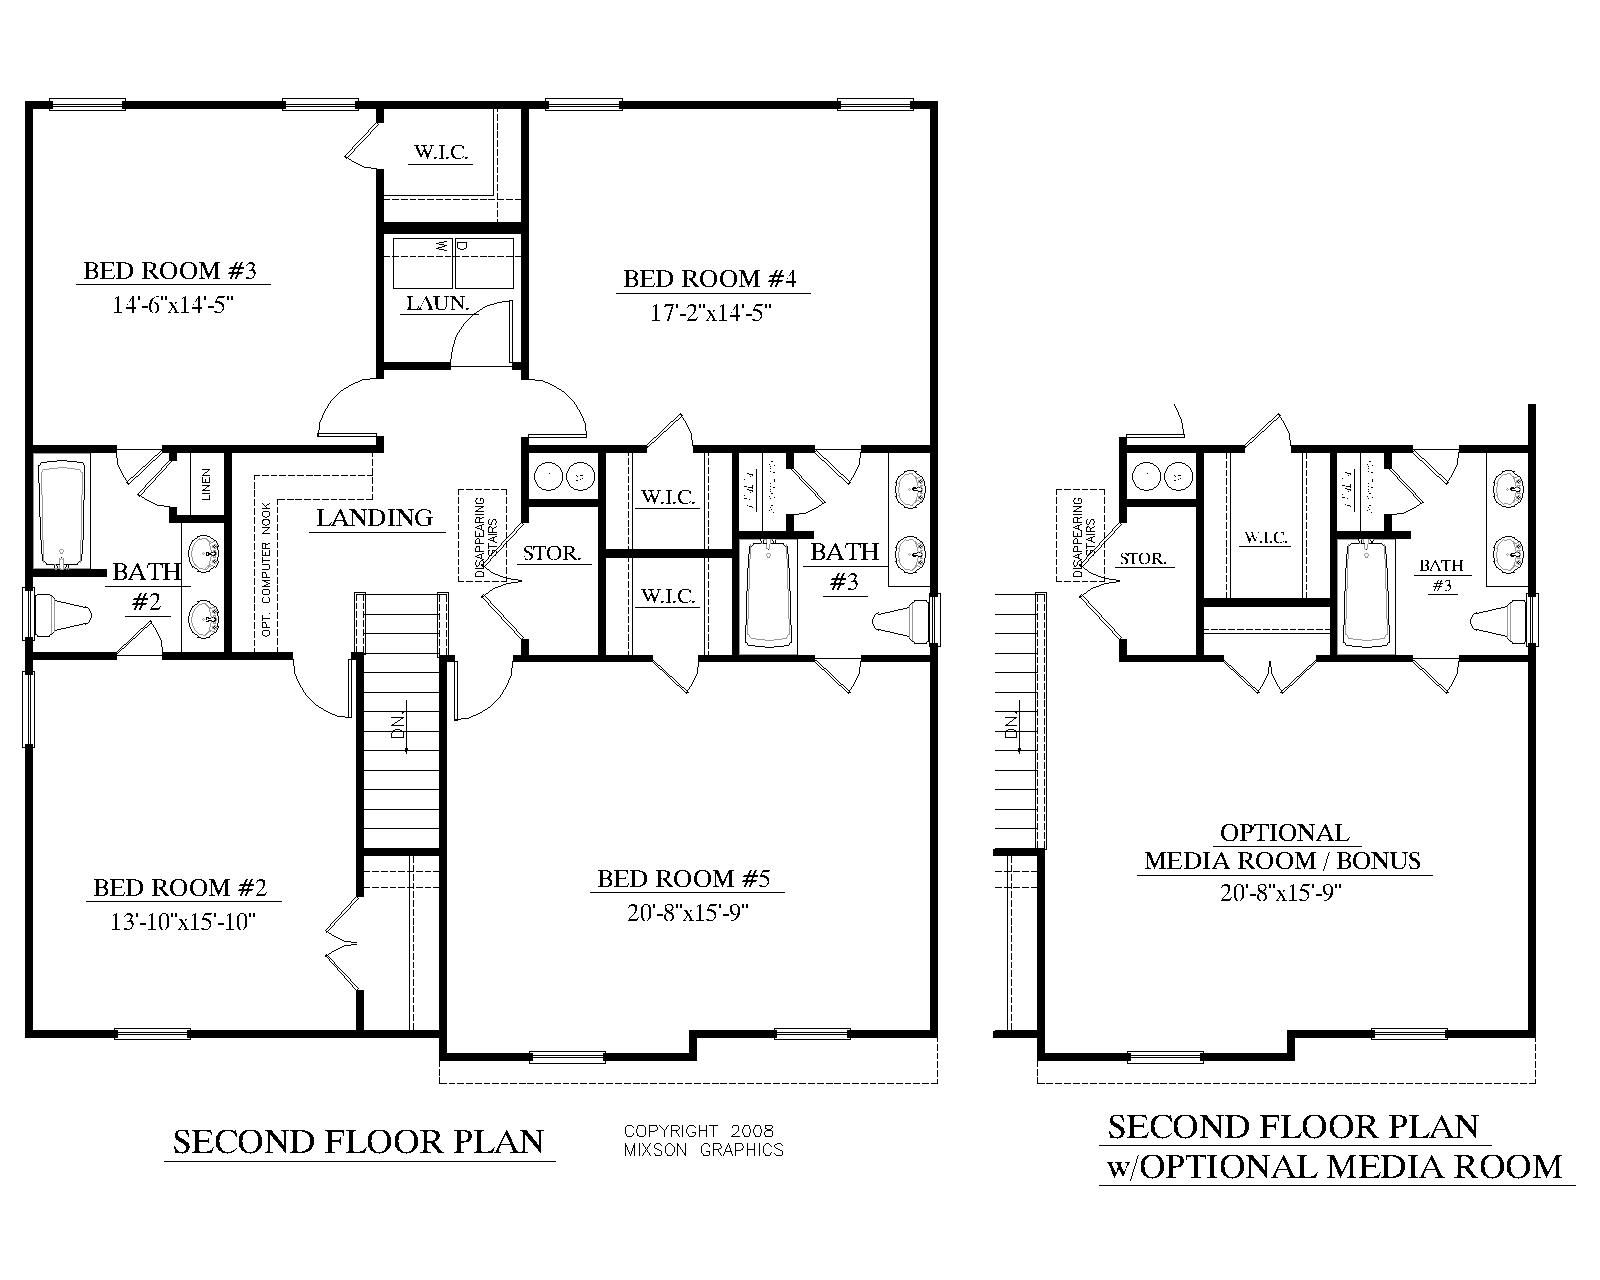 House plan 2691 a mccormick 2nd floor plan 2691 square for 2nd story floor plans